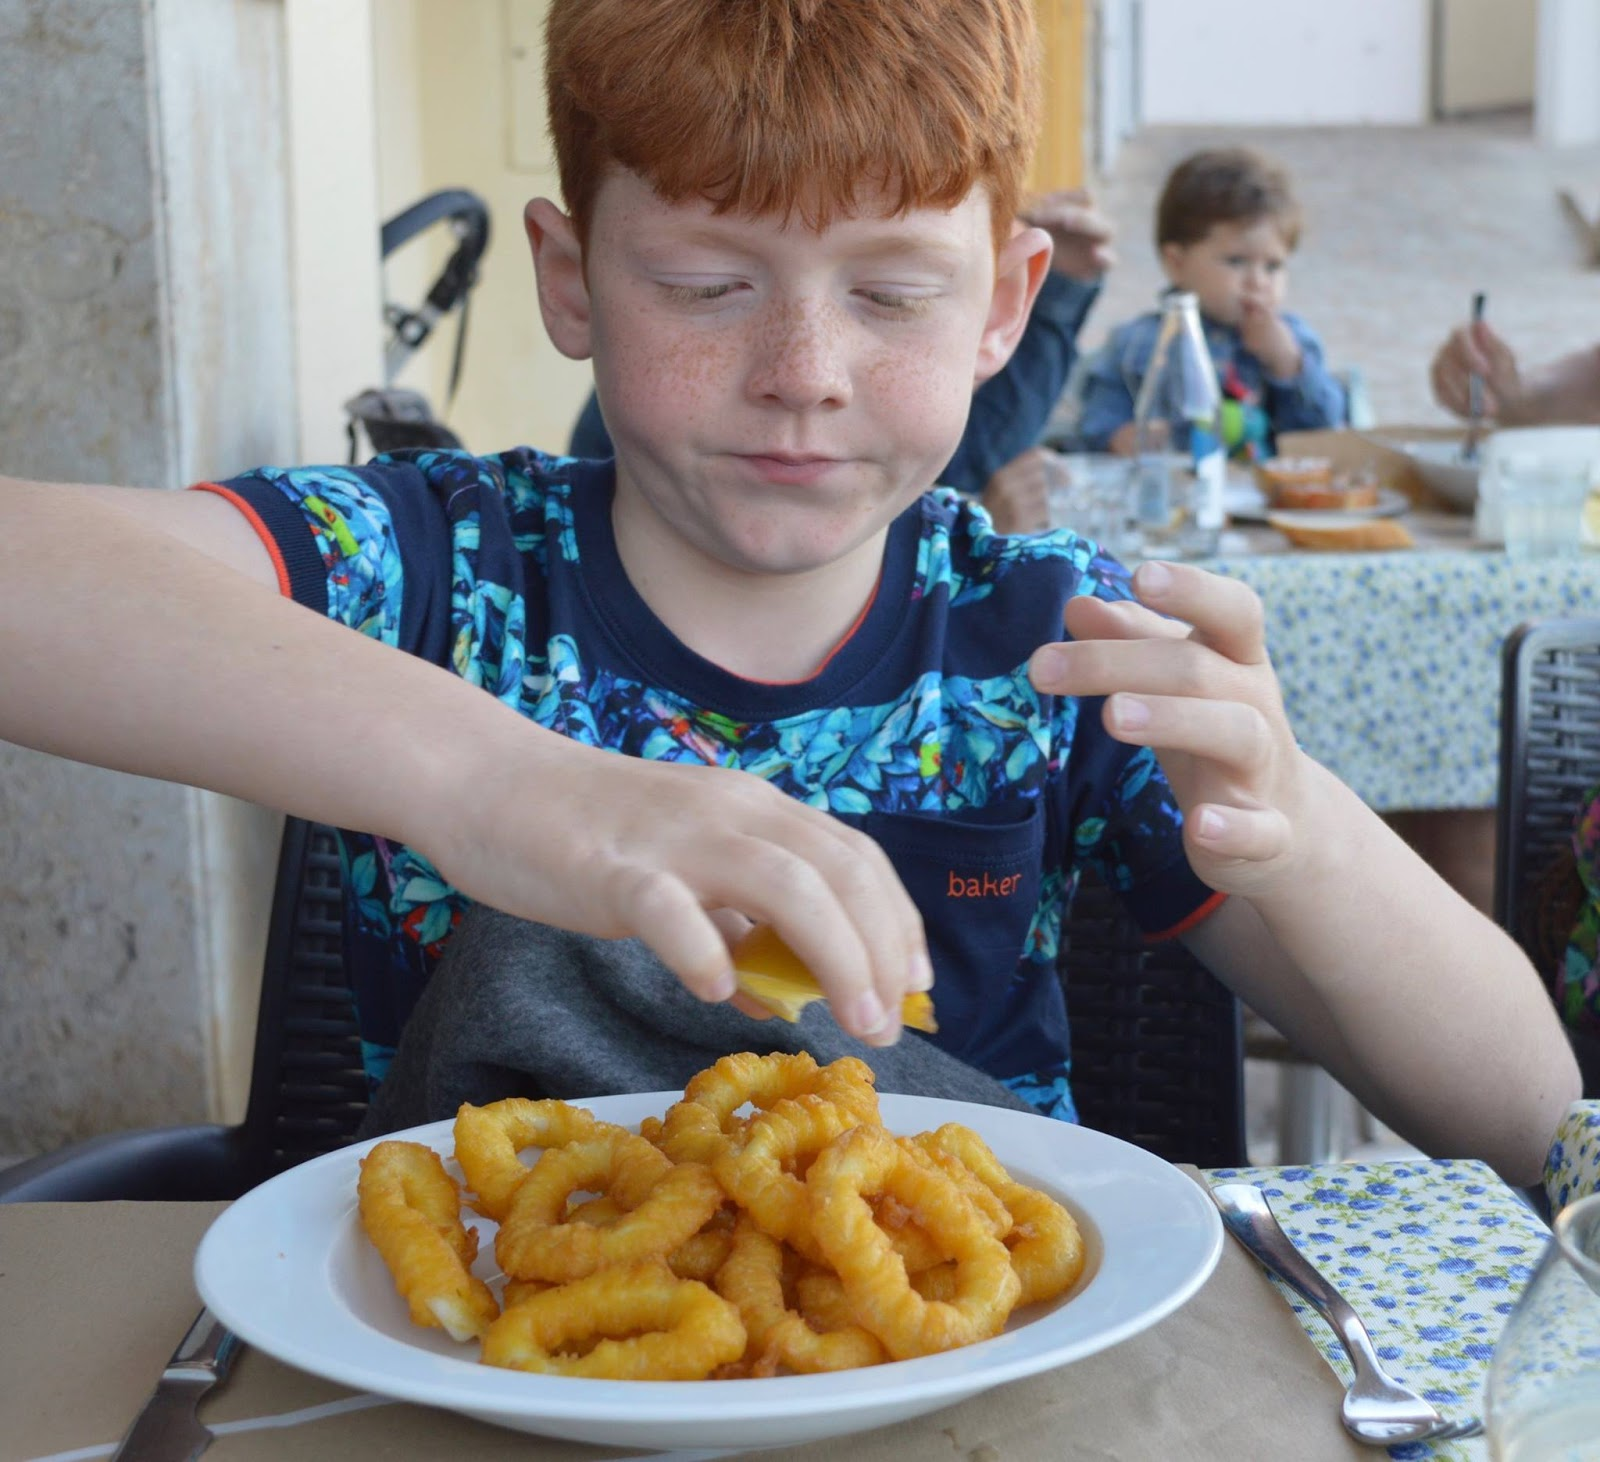 A Dad's Top 10 Holiday Essentials #MarkWarnerDad - Harry eating Calamari